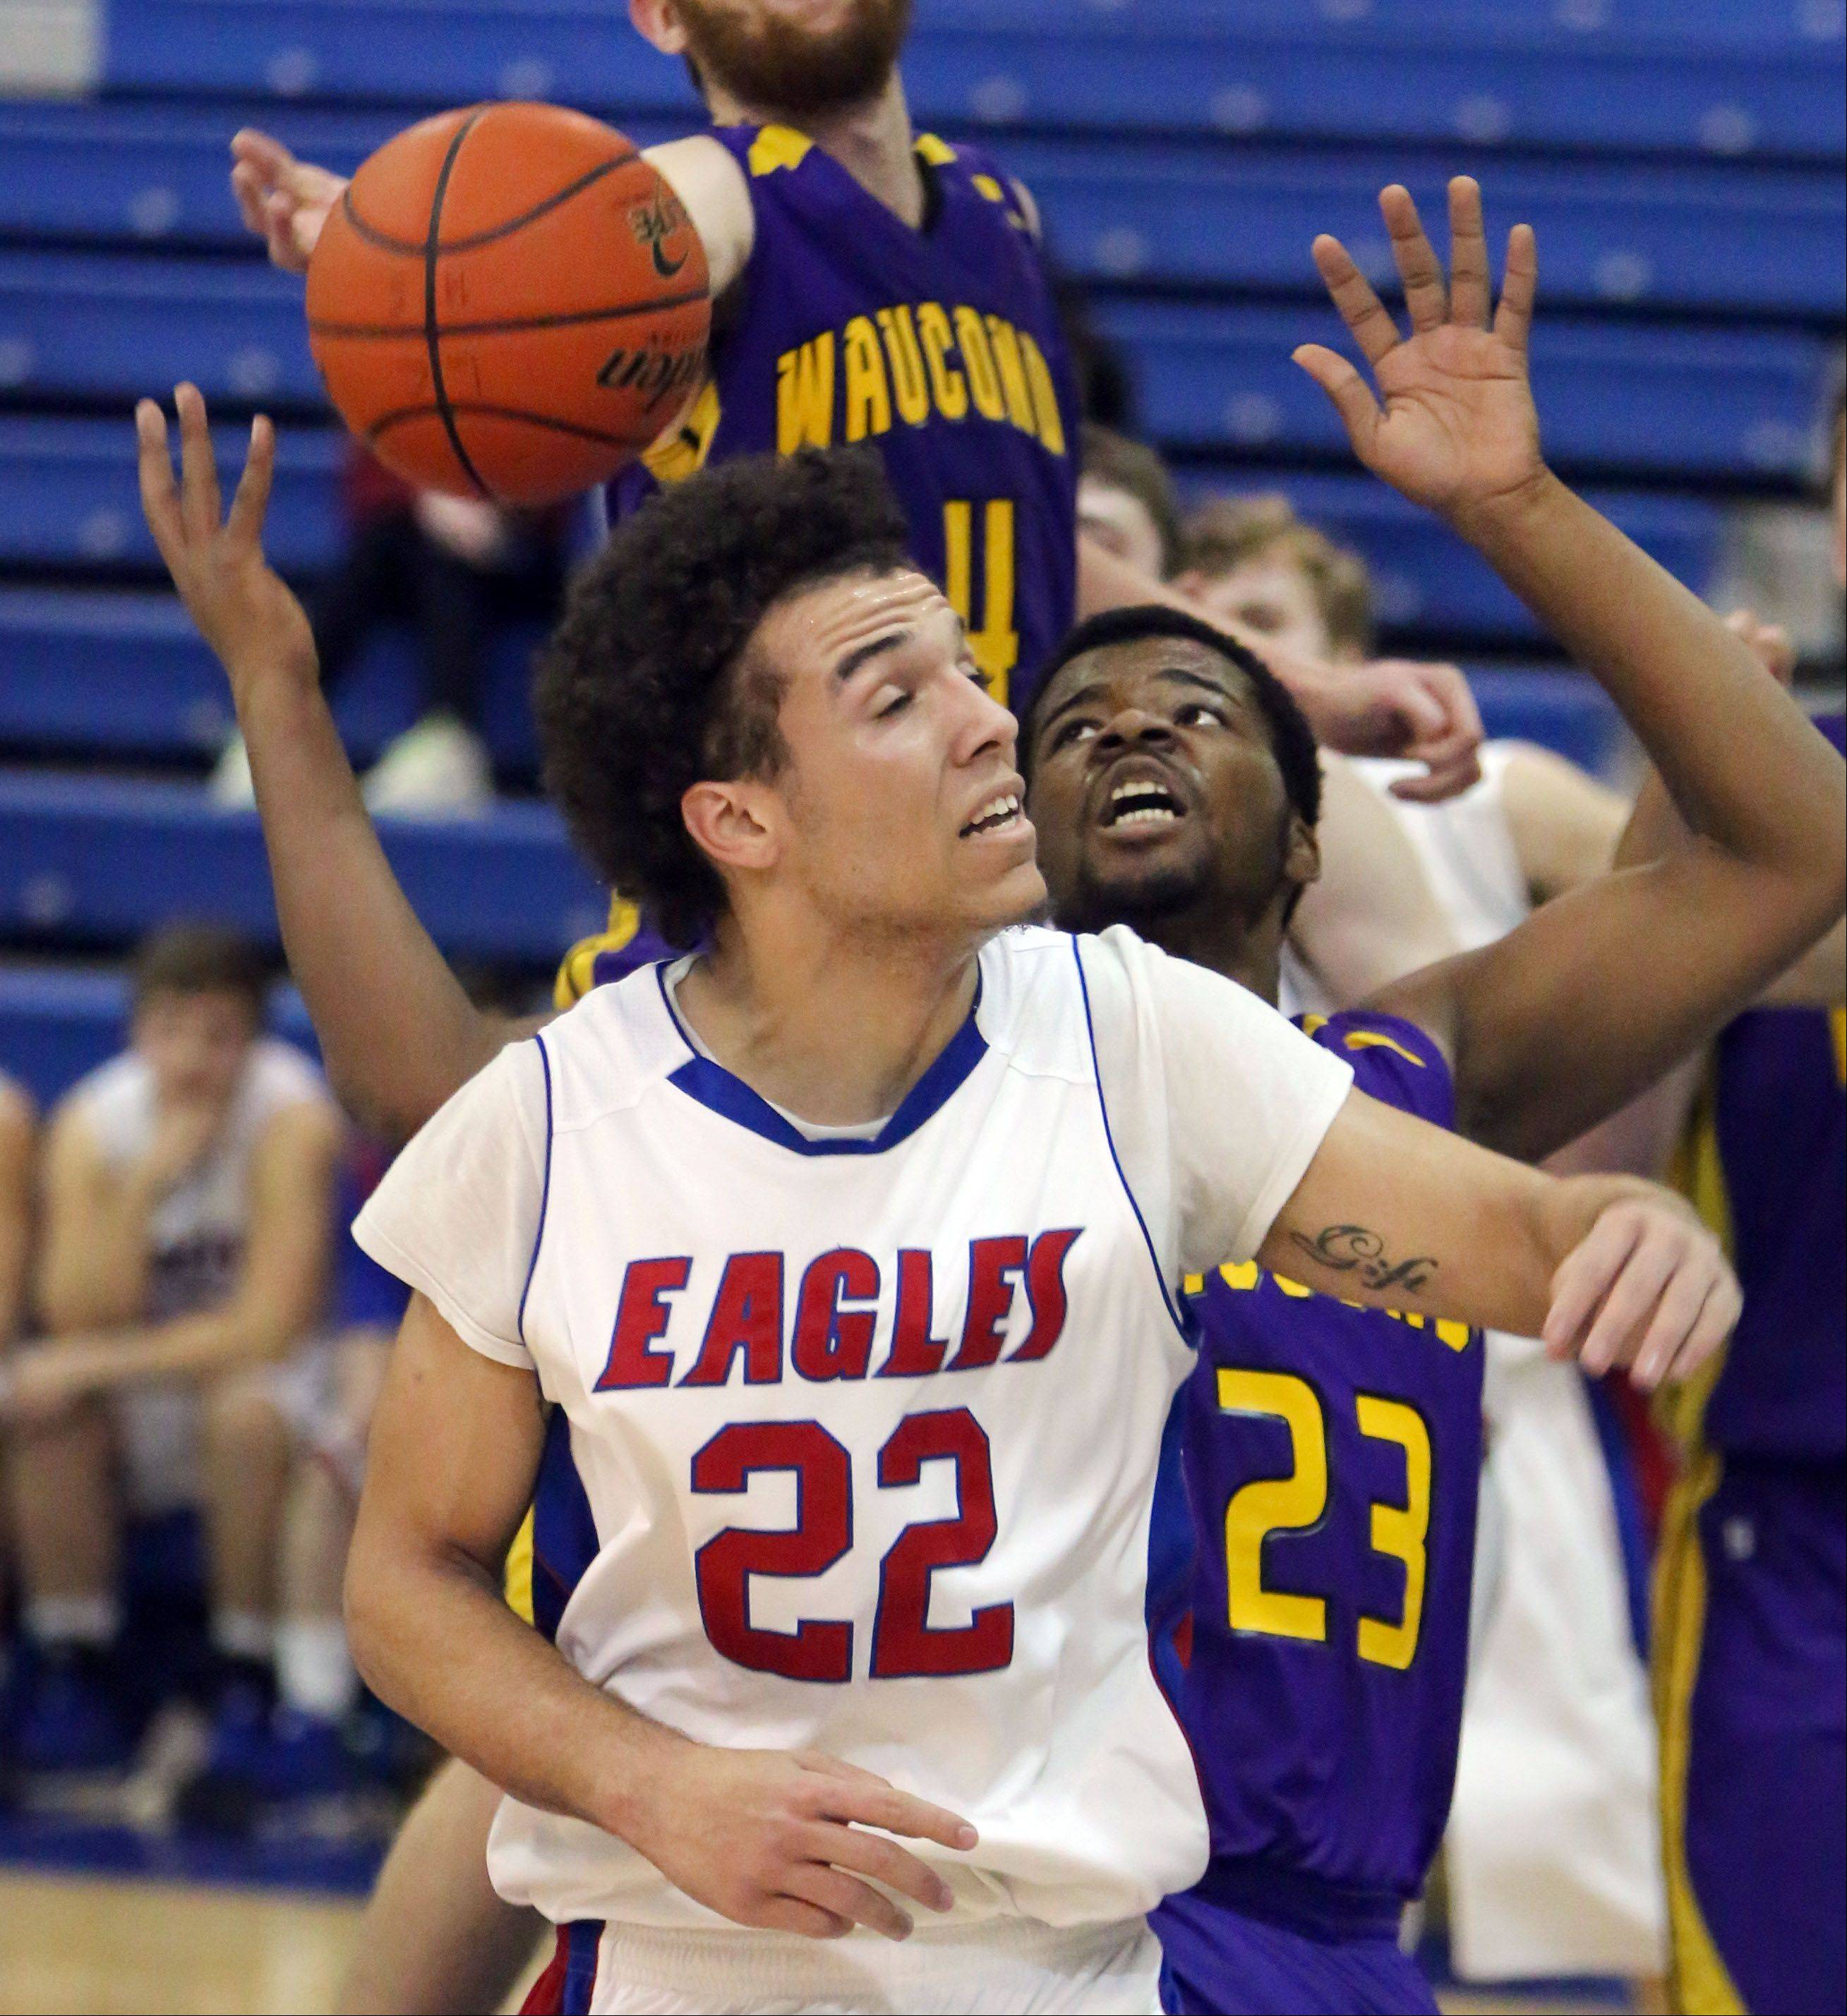 Lakes' Tramone Hudson, left, and Wauconda's Dion Head track down a rebound during Tuesday's game in Lake Villa.